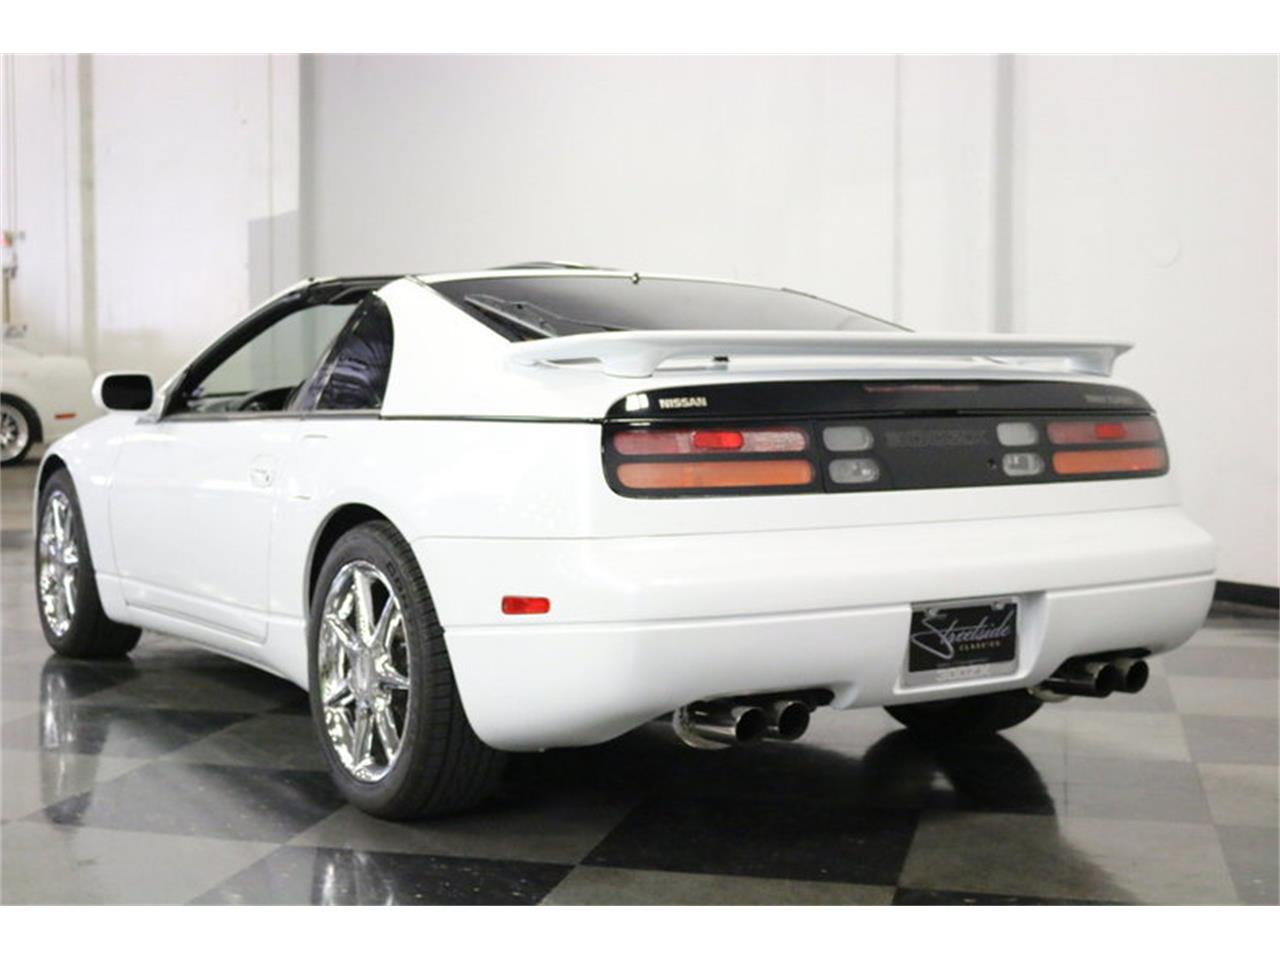 Large Picture of '95 Nissan 300ZX located in Texas Offered by Streetside Classics - Dallas / Fort Worth - NIW7